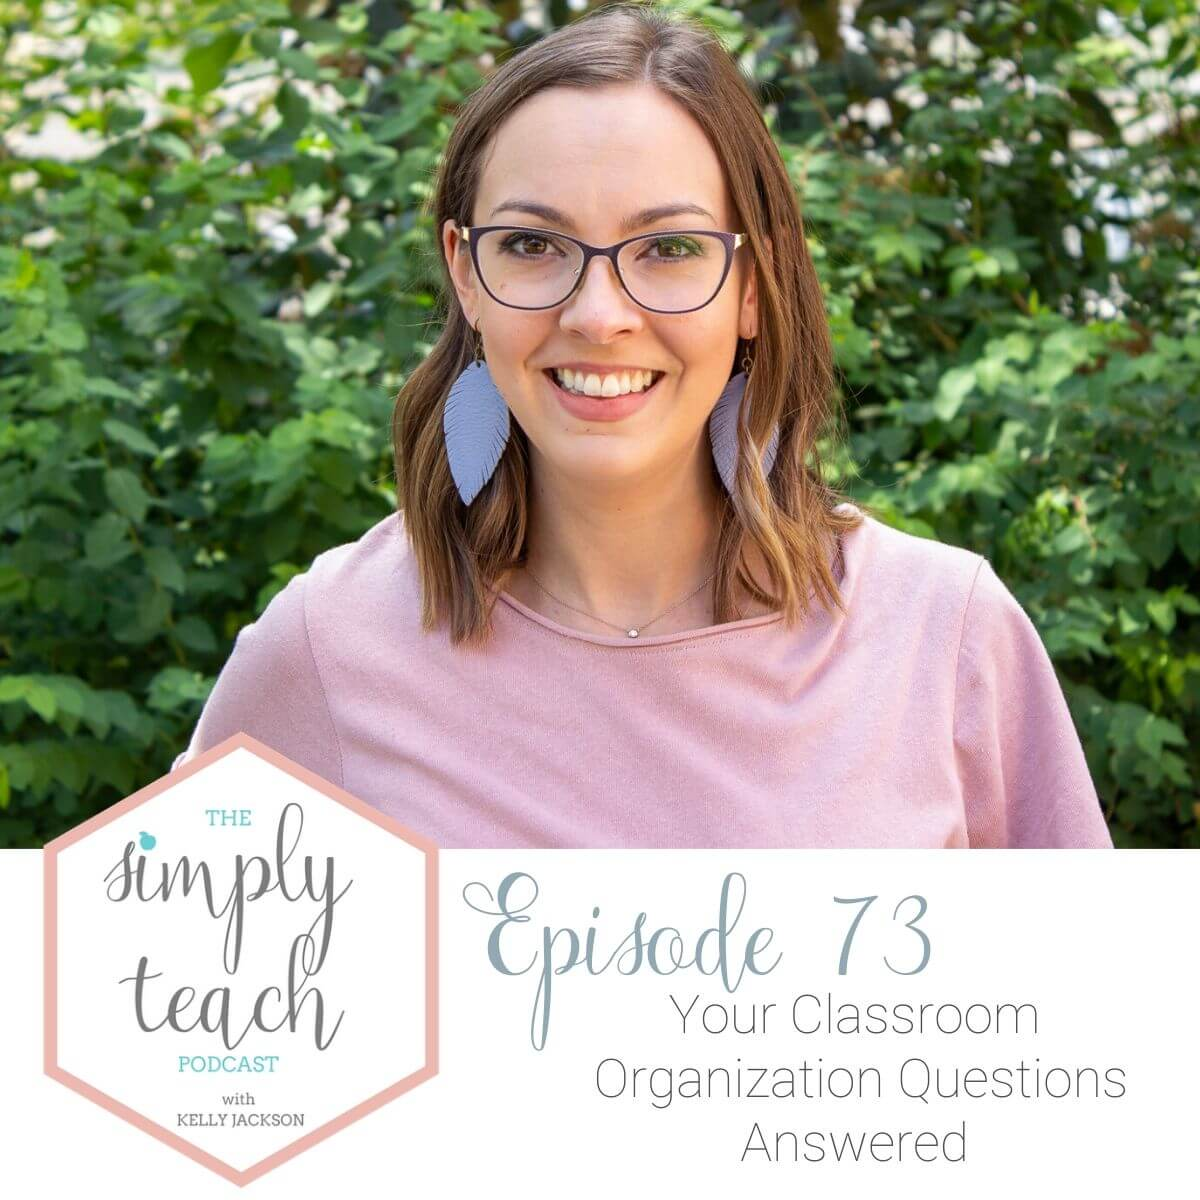 Do you find yourself wondering the same questions over and over? How to organize all the student papers, what to prioritize and what to leave behind? This podcast episode answers your most pressing classroom organization questions!